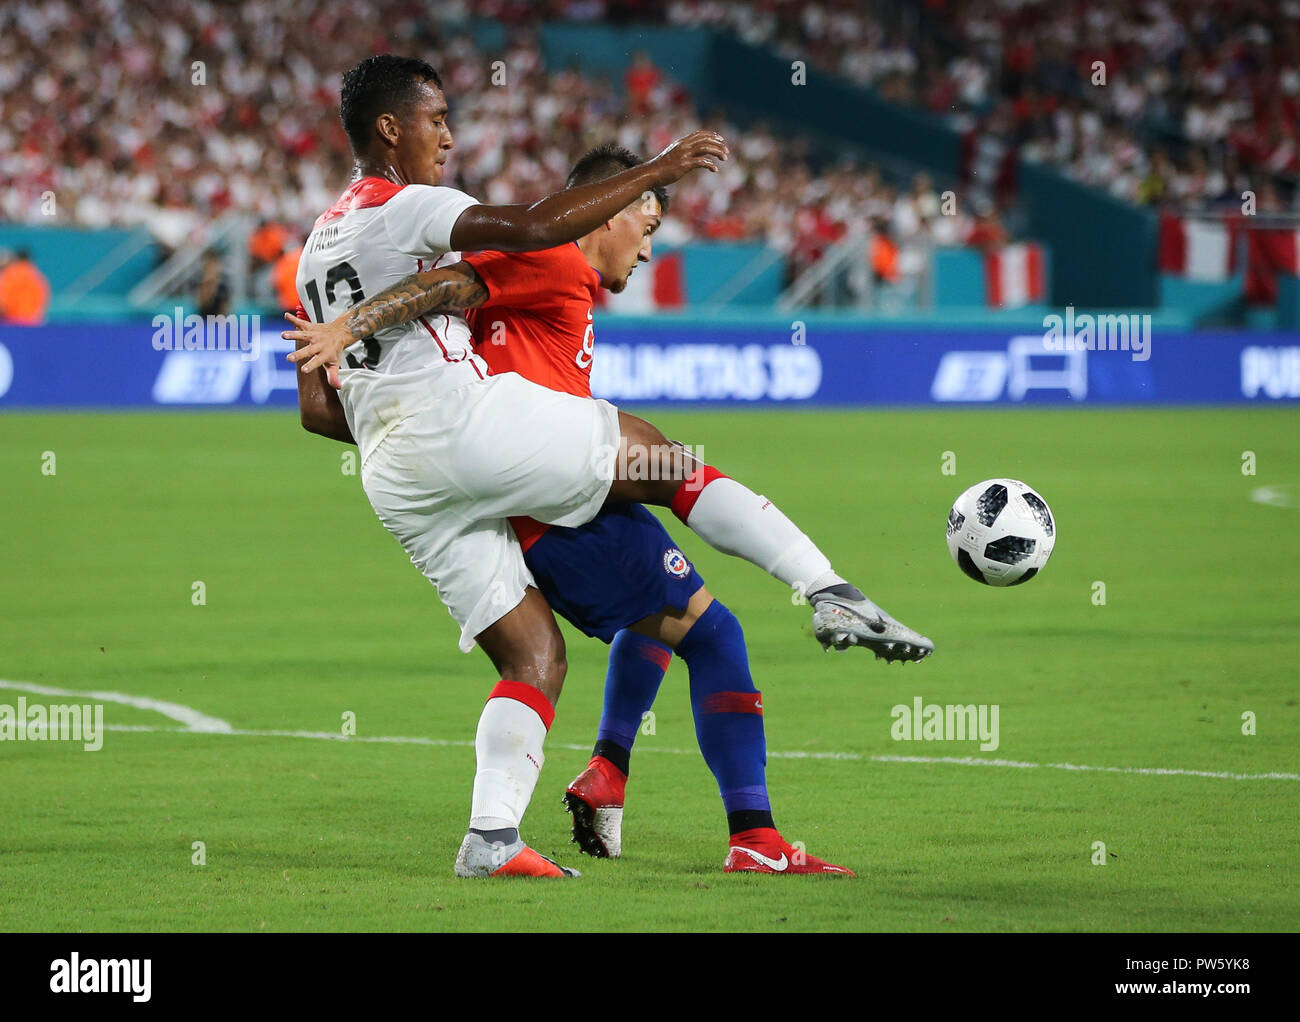 Miami Gardens, Florida, USA. 12th Oct, 2018. Peru midfielder RENATO TAPIA (13) battles for ball possession with Chile forward NICOLAS CASTILLO (9) during an international friendly match between the Peru and Chile national soccer teams, at the Hard Rock Stadium in Miami Gardens, Florida. Credit: Mario Houben/ZUMA Wire/Alamy Live News - Stock Image